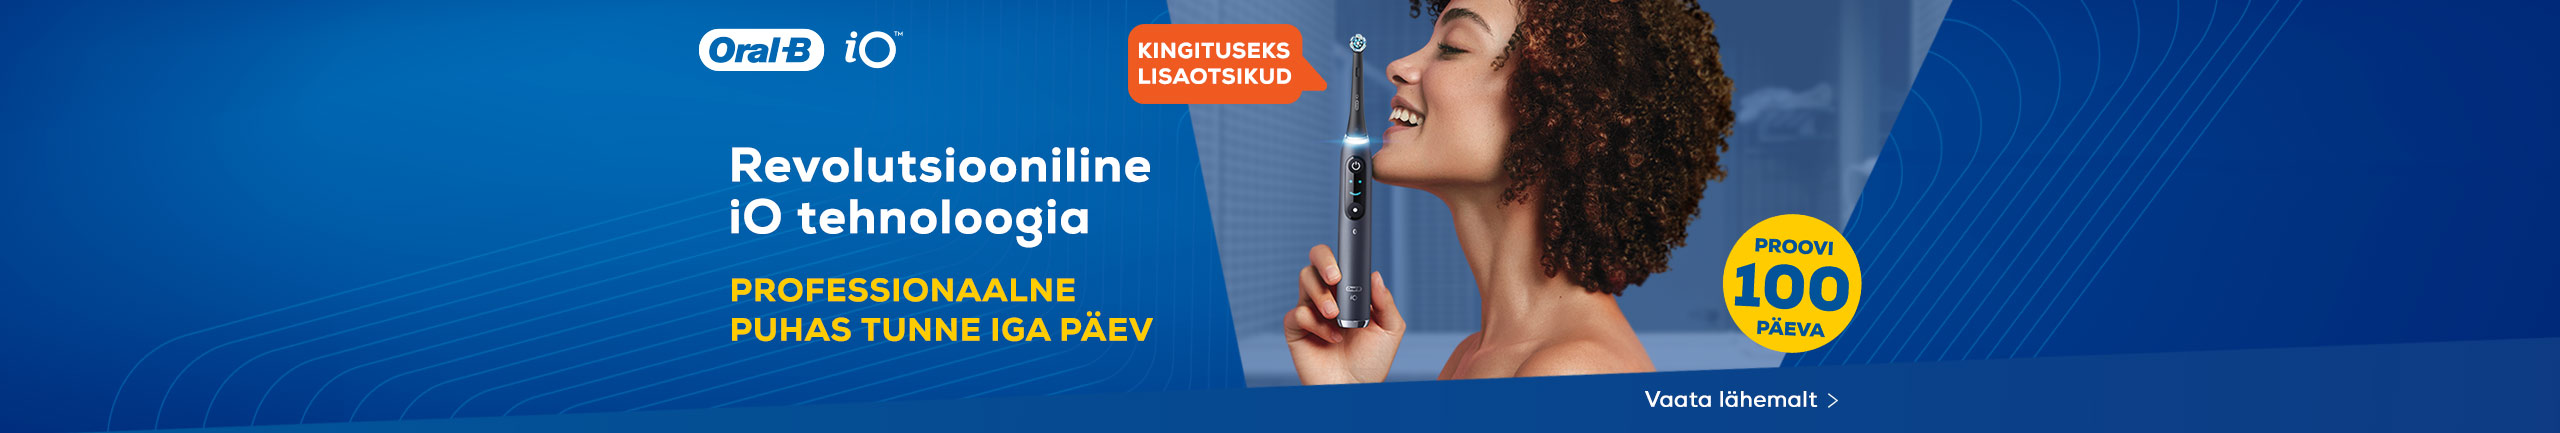 Buy Oral-B iO toothbrush and receive a complimentary gift